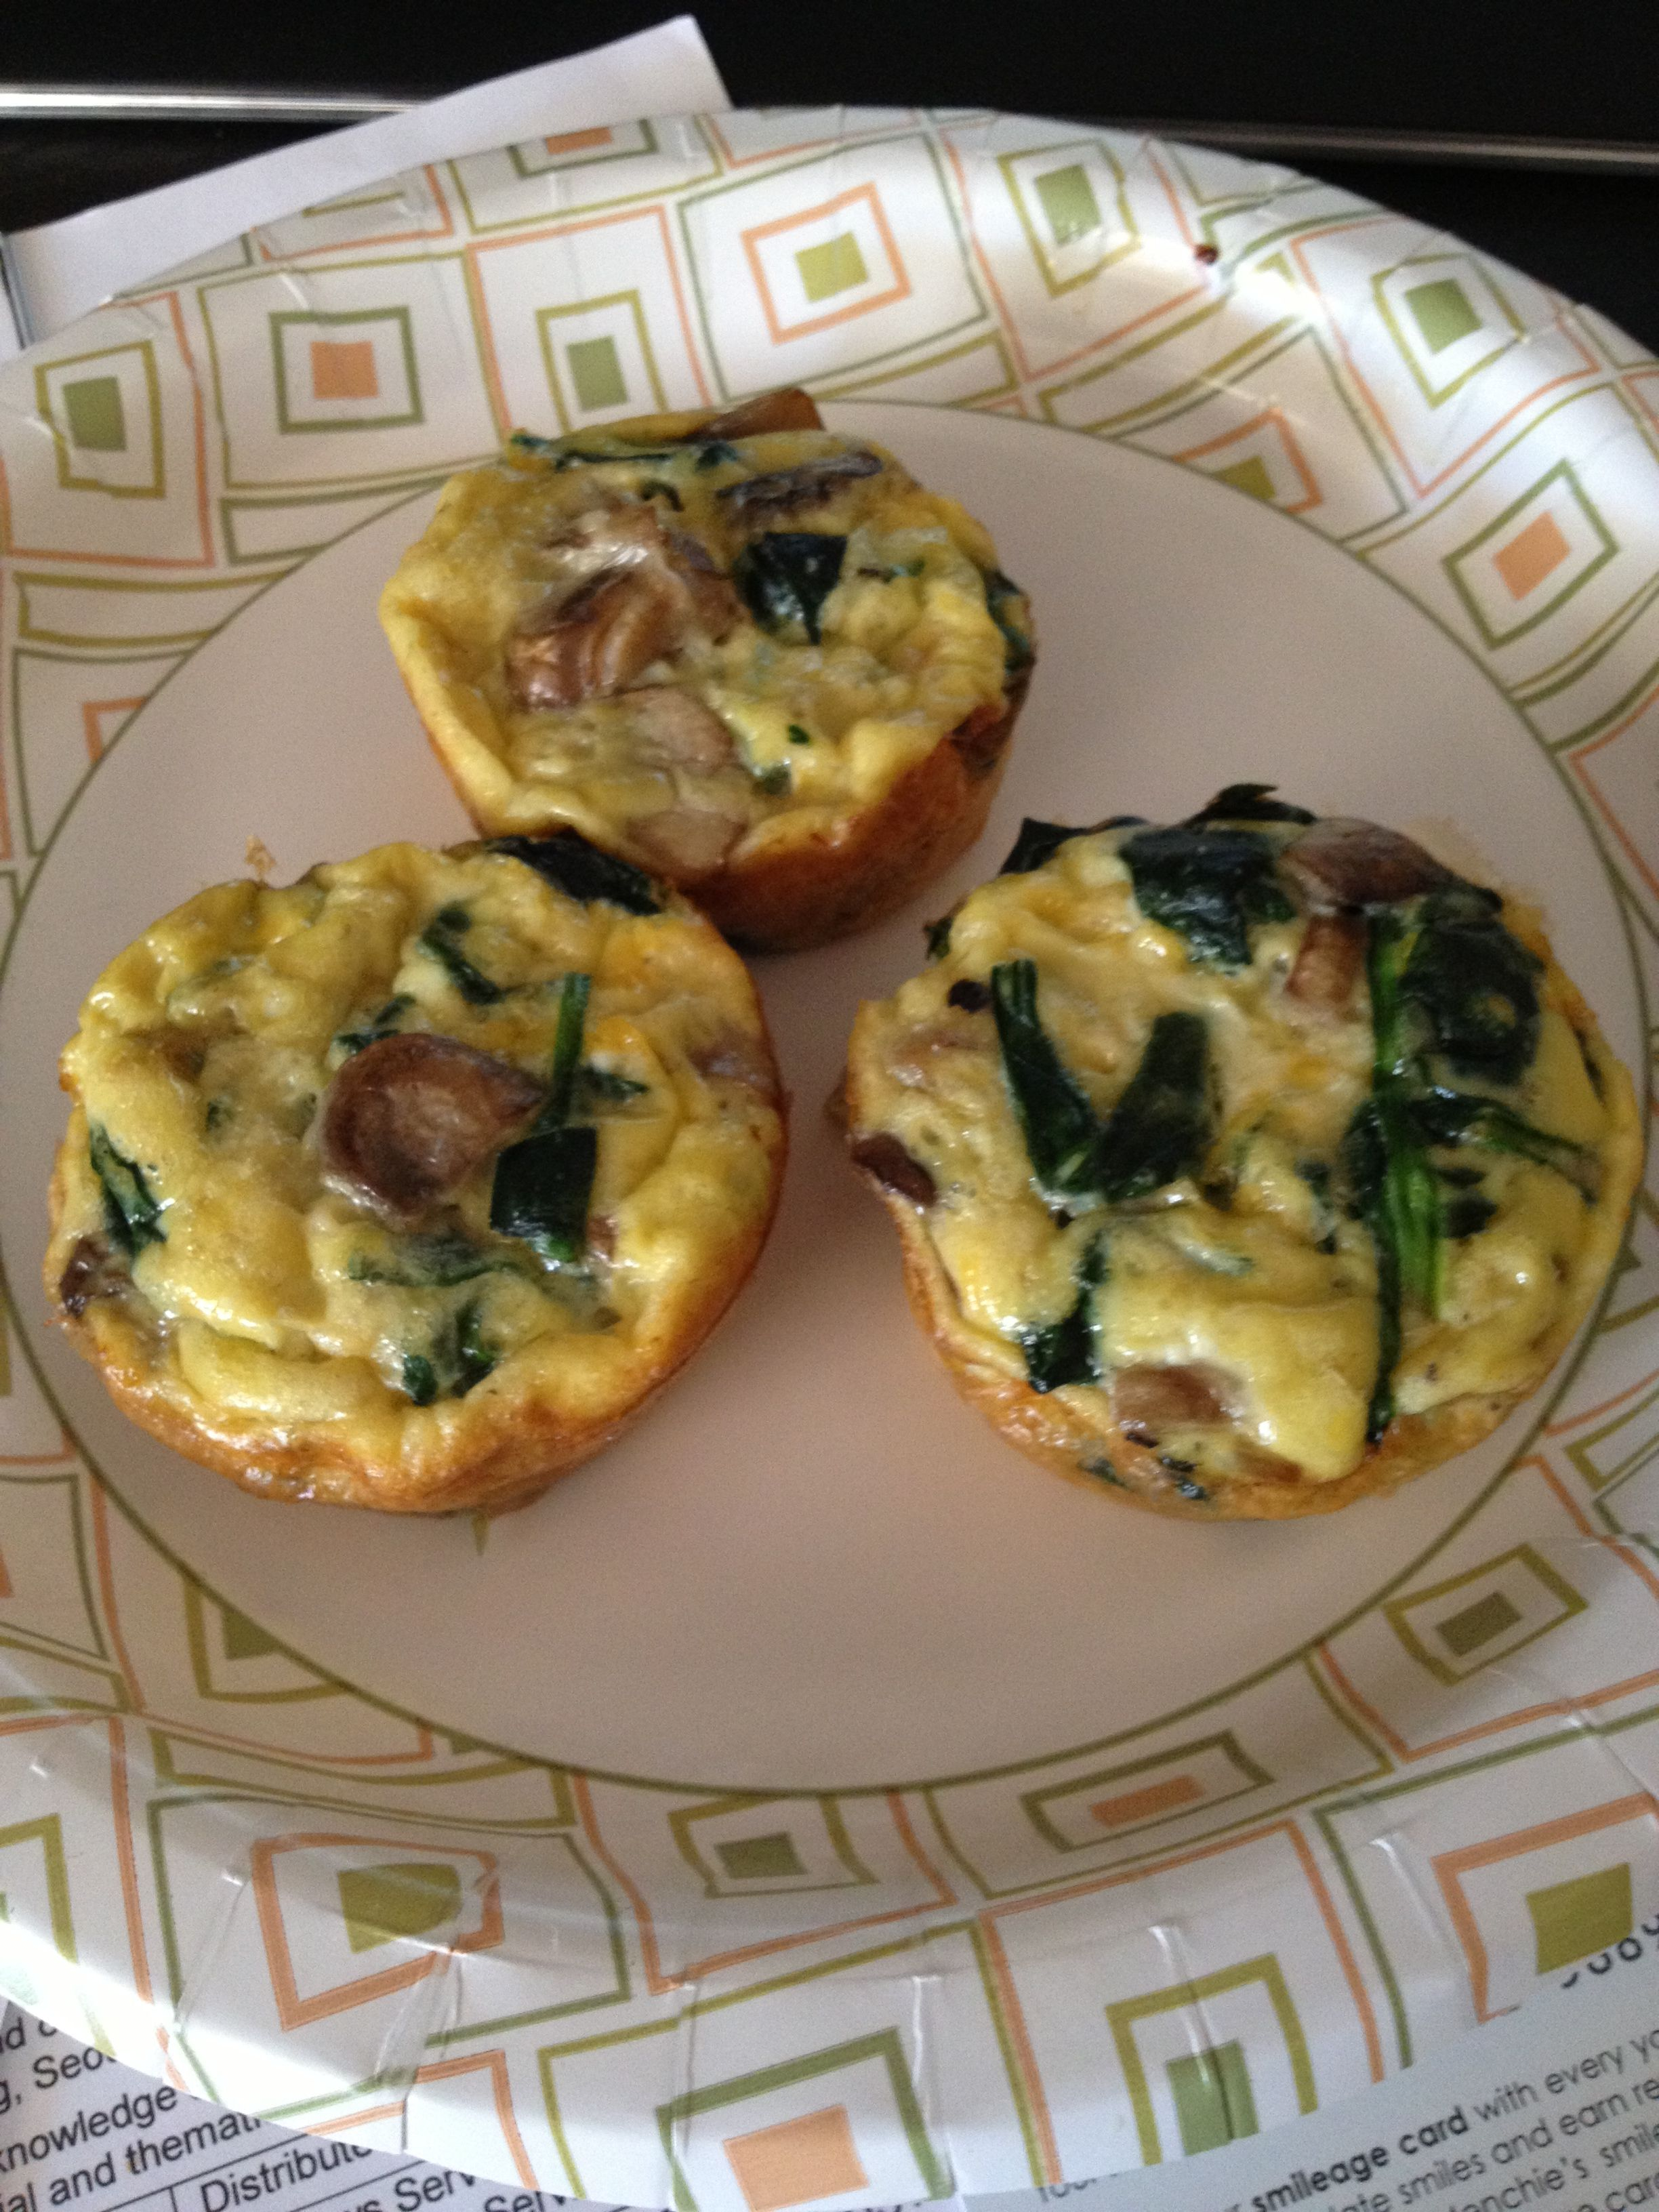 Made these spinach egg cups. Super Easy and yummy low carb meal. Www.recipesquickneasy.com/spinach-egg-cups/